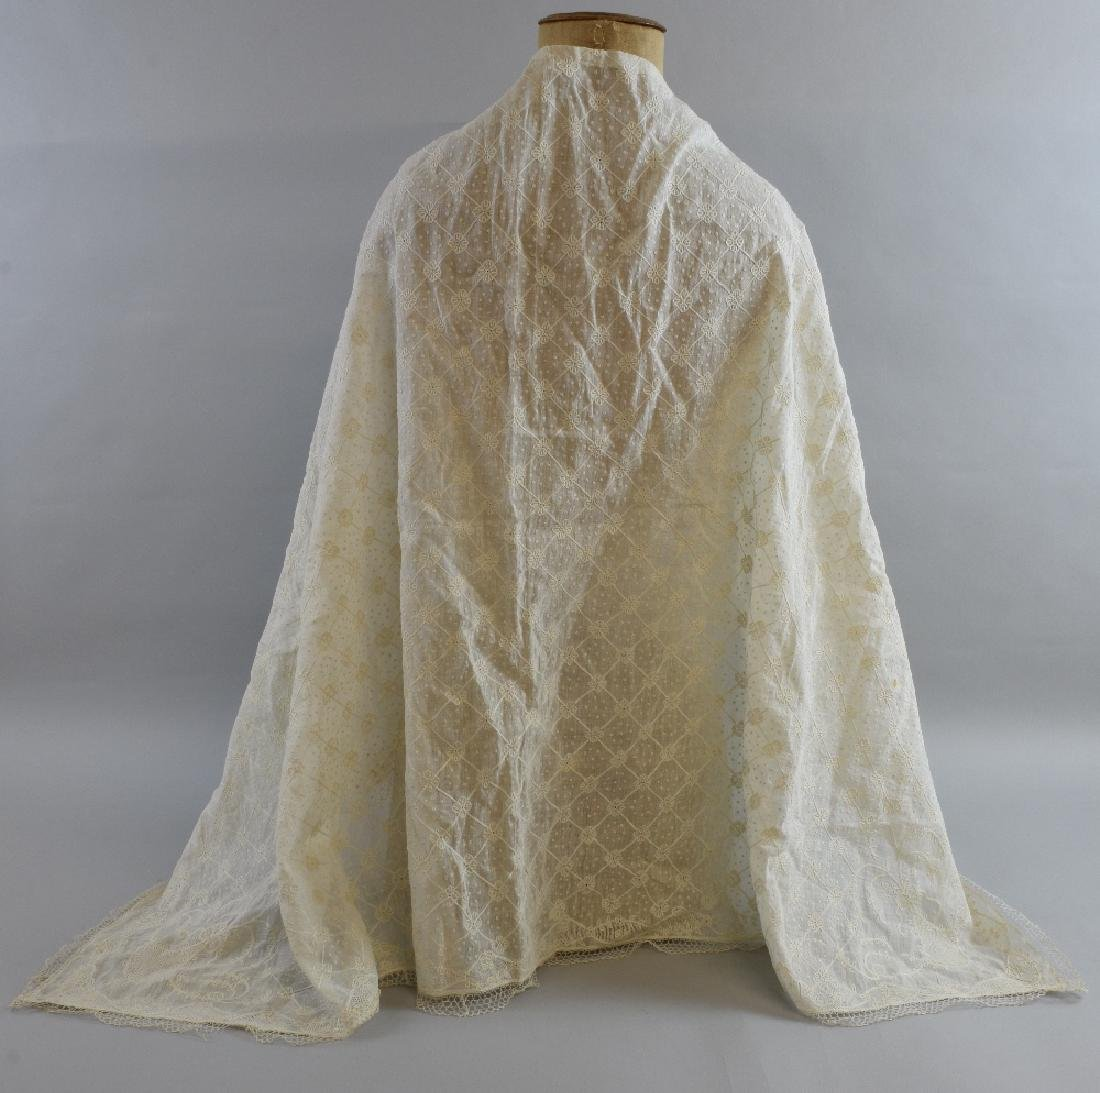 An 18th C muslin shawl finely worked wit